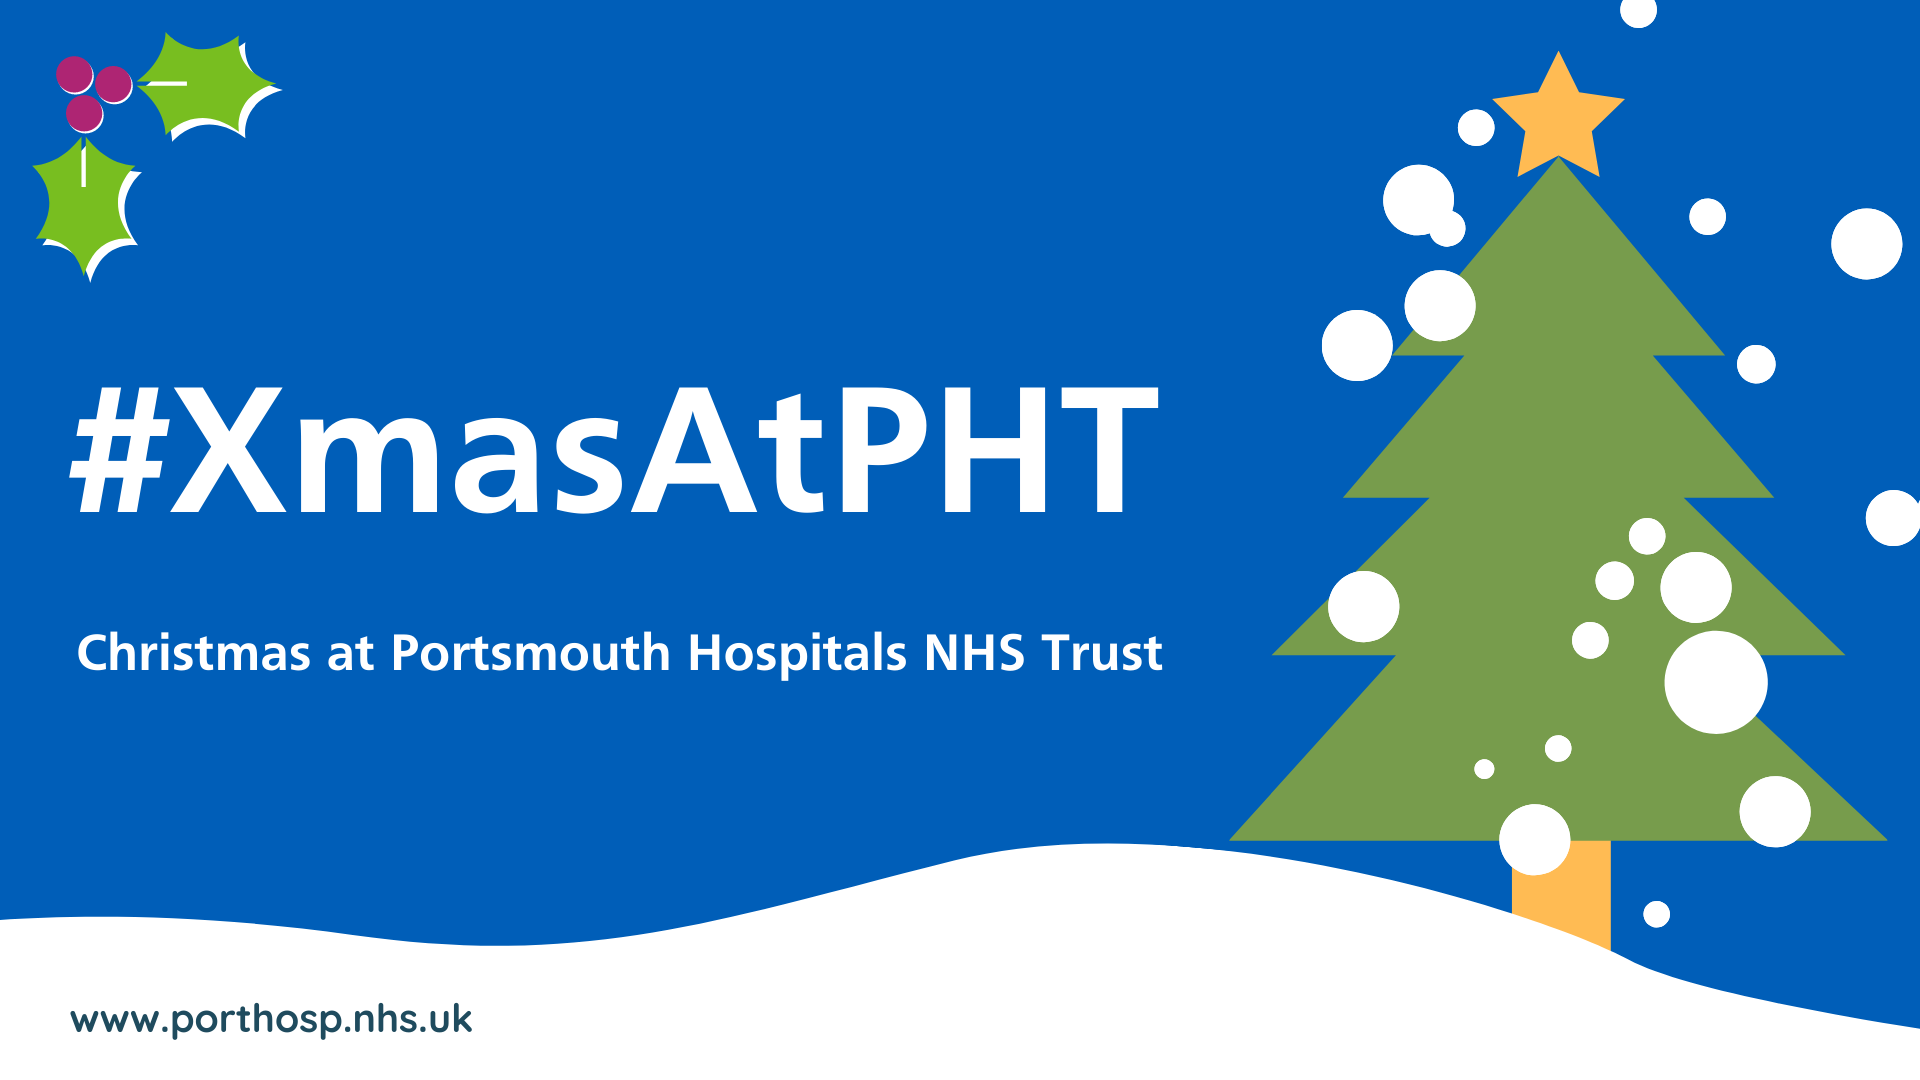 Christmas at Portsmouth Hospitals NHS Trust